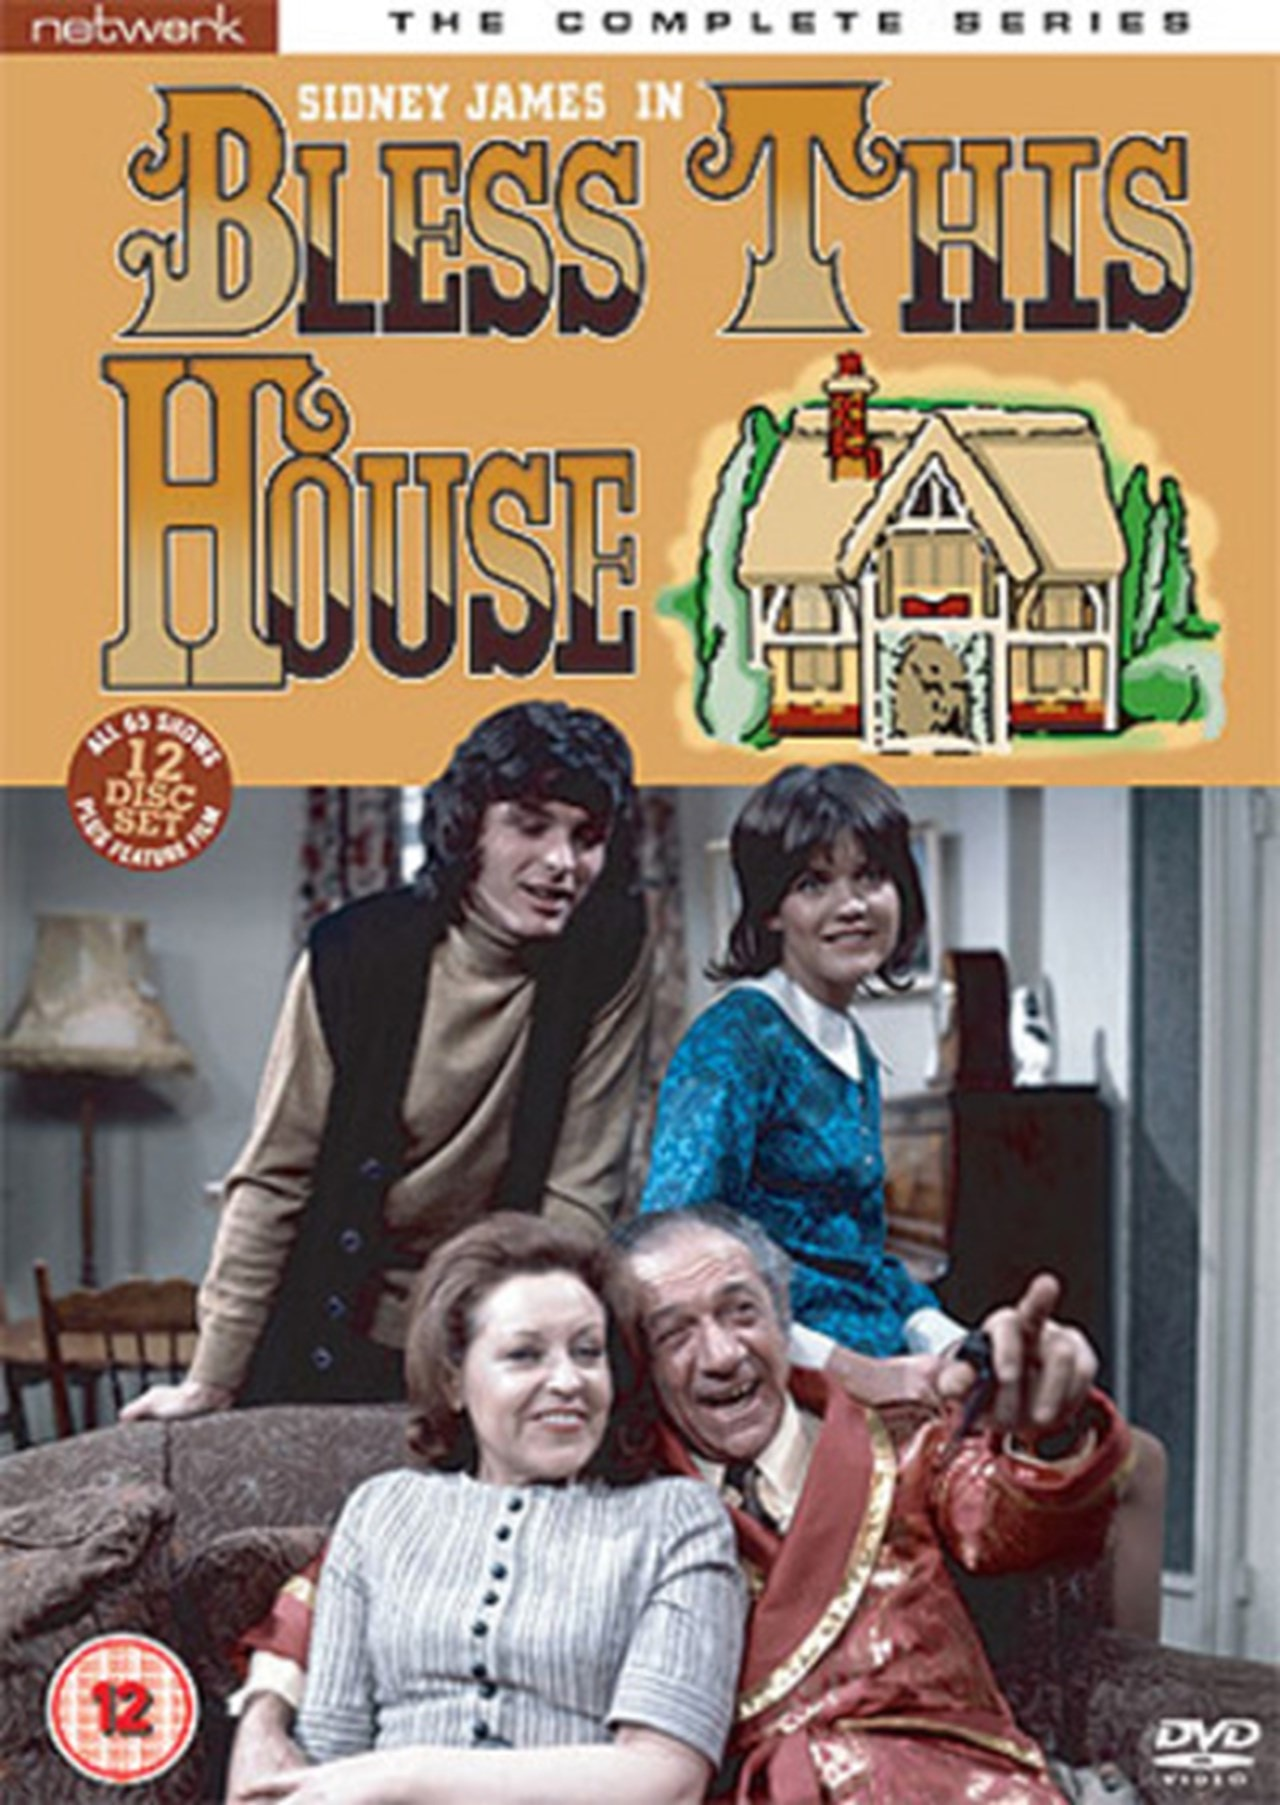 Bless This House Complete Series Dvd Box Set Free Shipping Over 20 Hmv Store